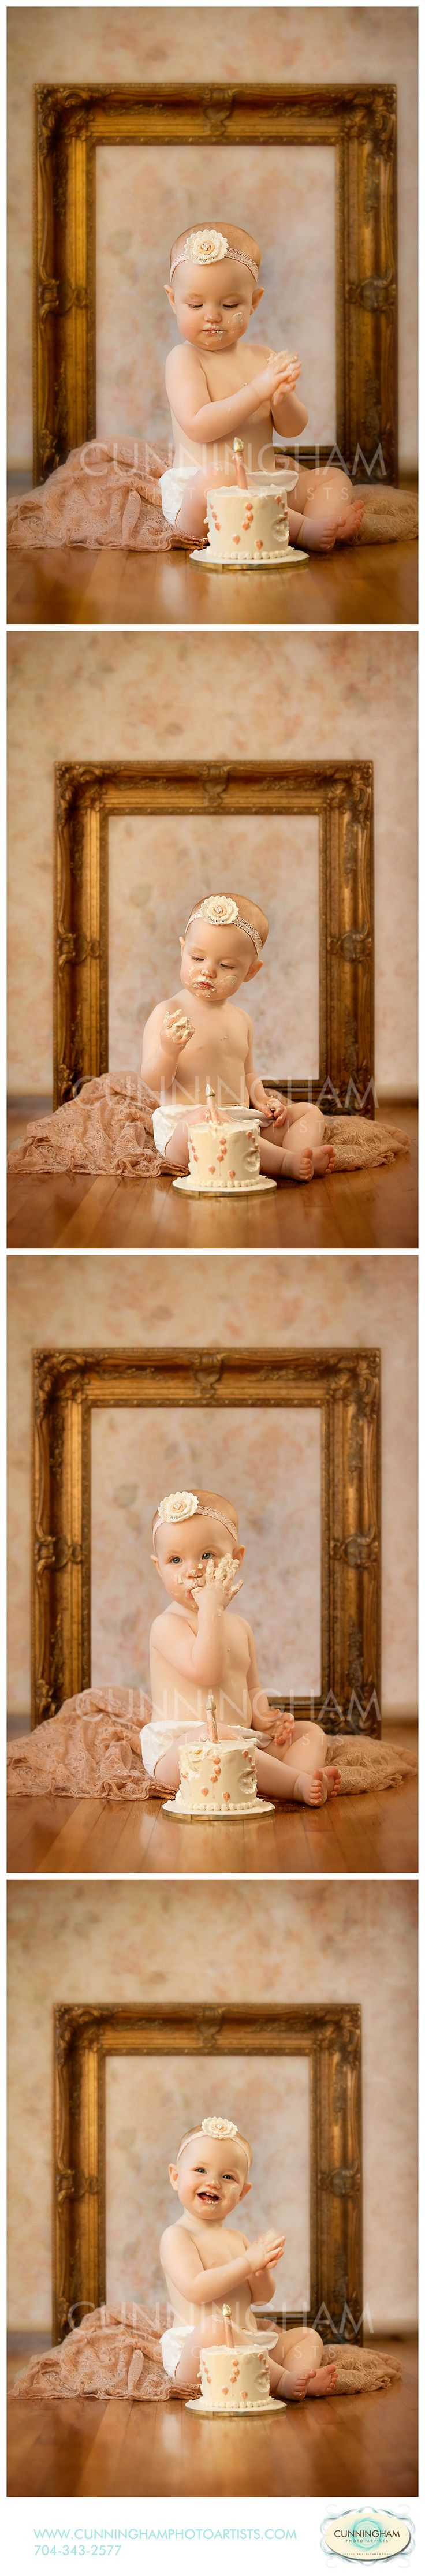 NICOLETTE 1 YEAR CAKE SMASH CUNNINGHAM PHOTO ARTISTS WOW FACTOR CAKES